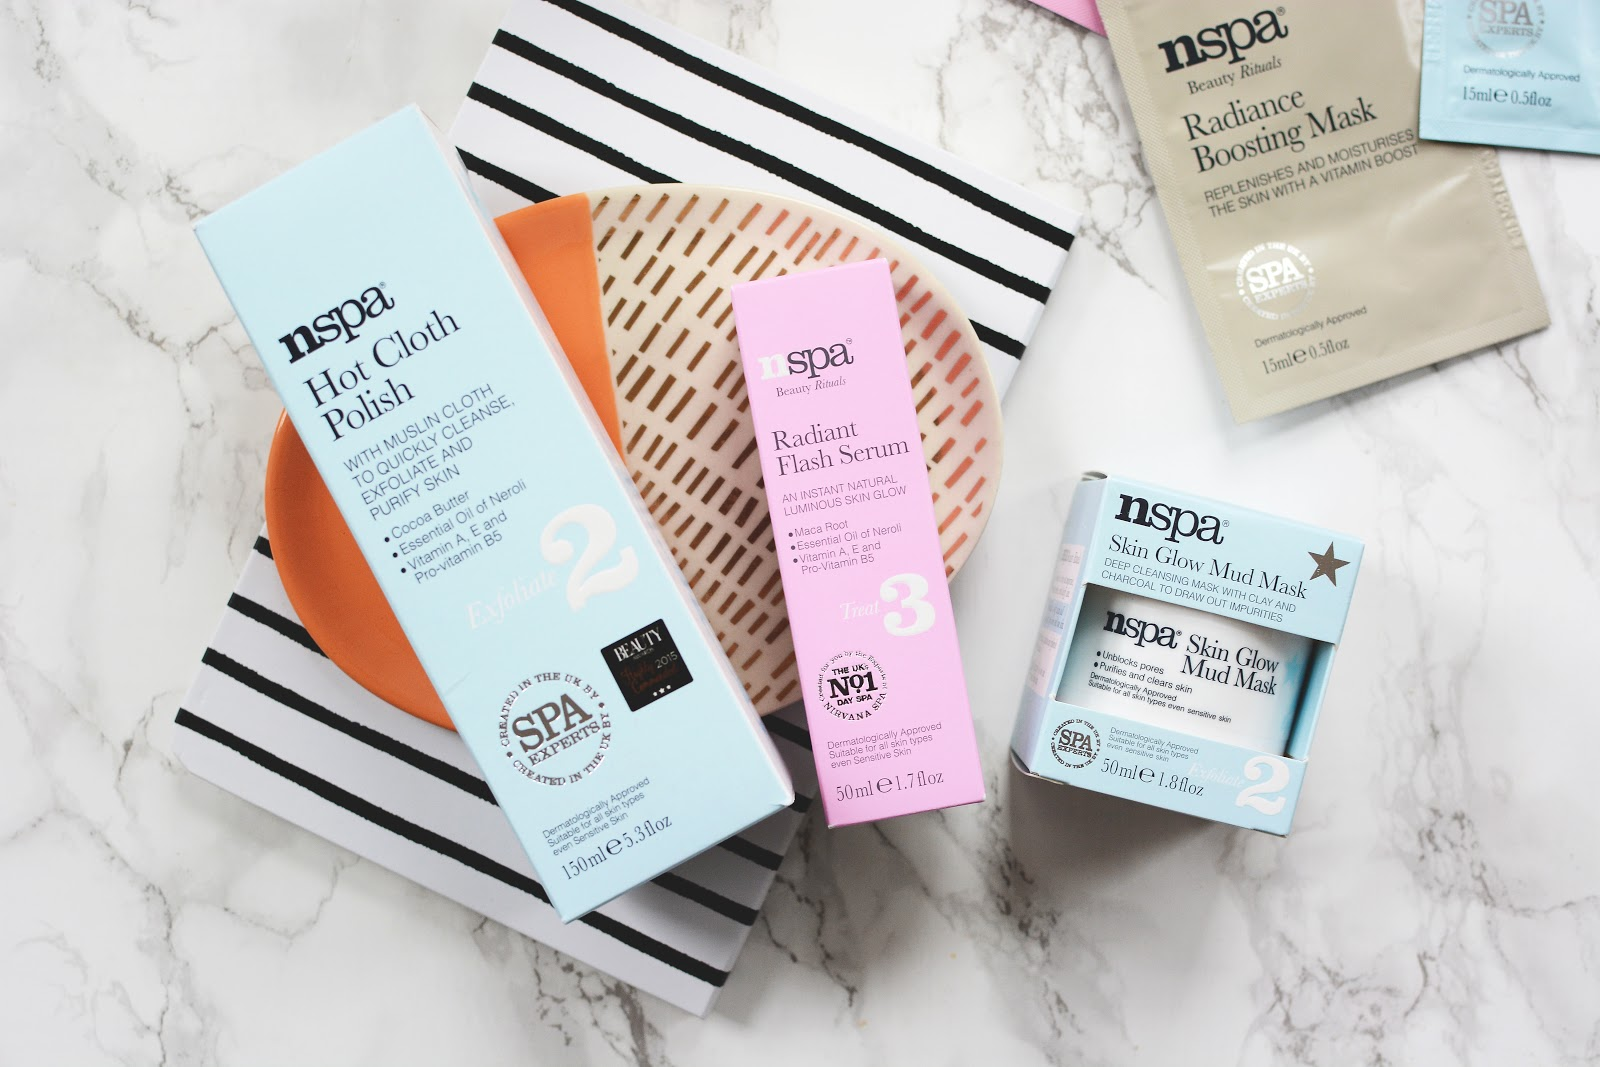 nspa skincare, skincare from asda, budget friendly skincare, affordable beauty